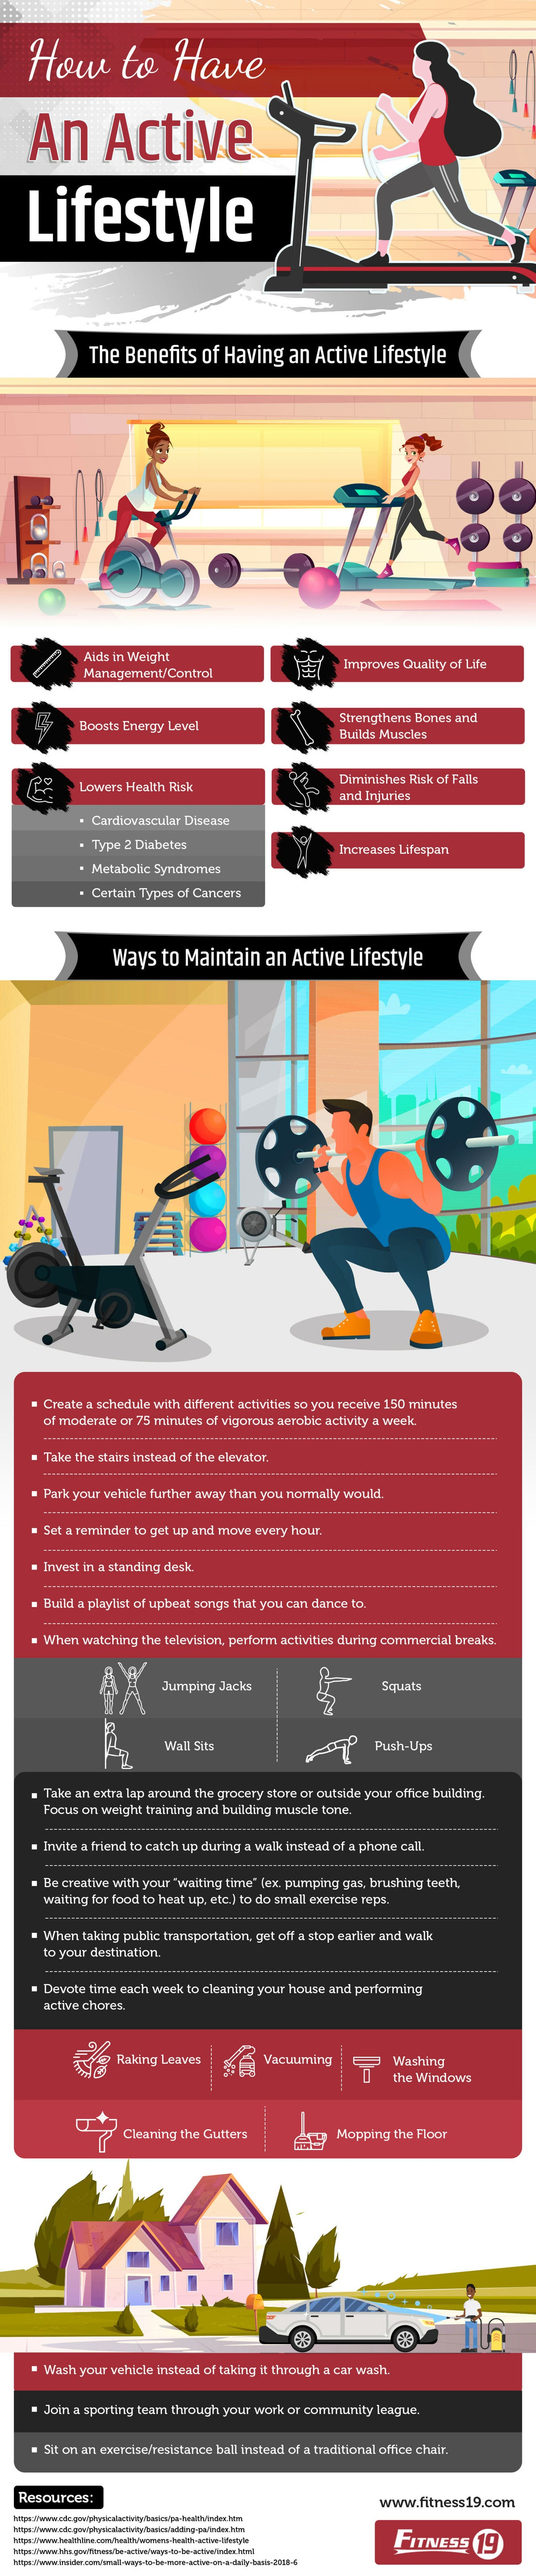 How to Have an Active Lifestyle #infographic